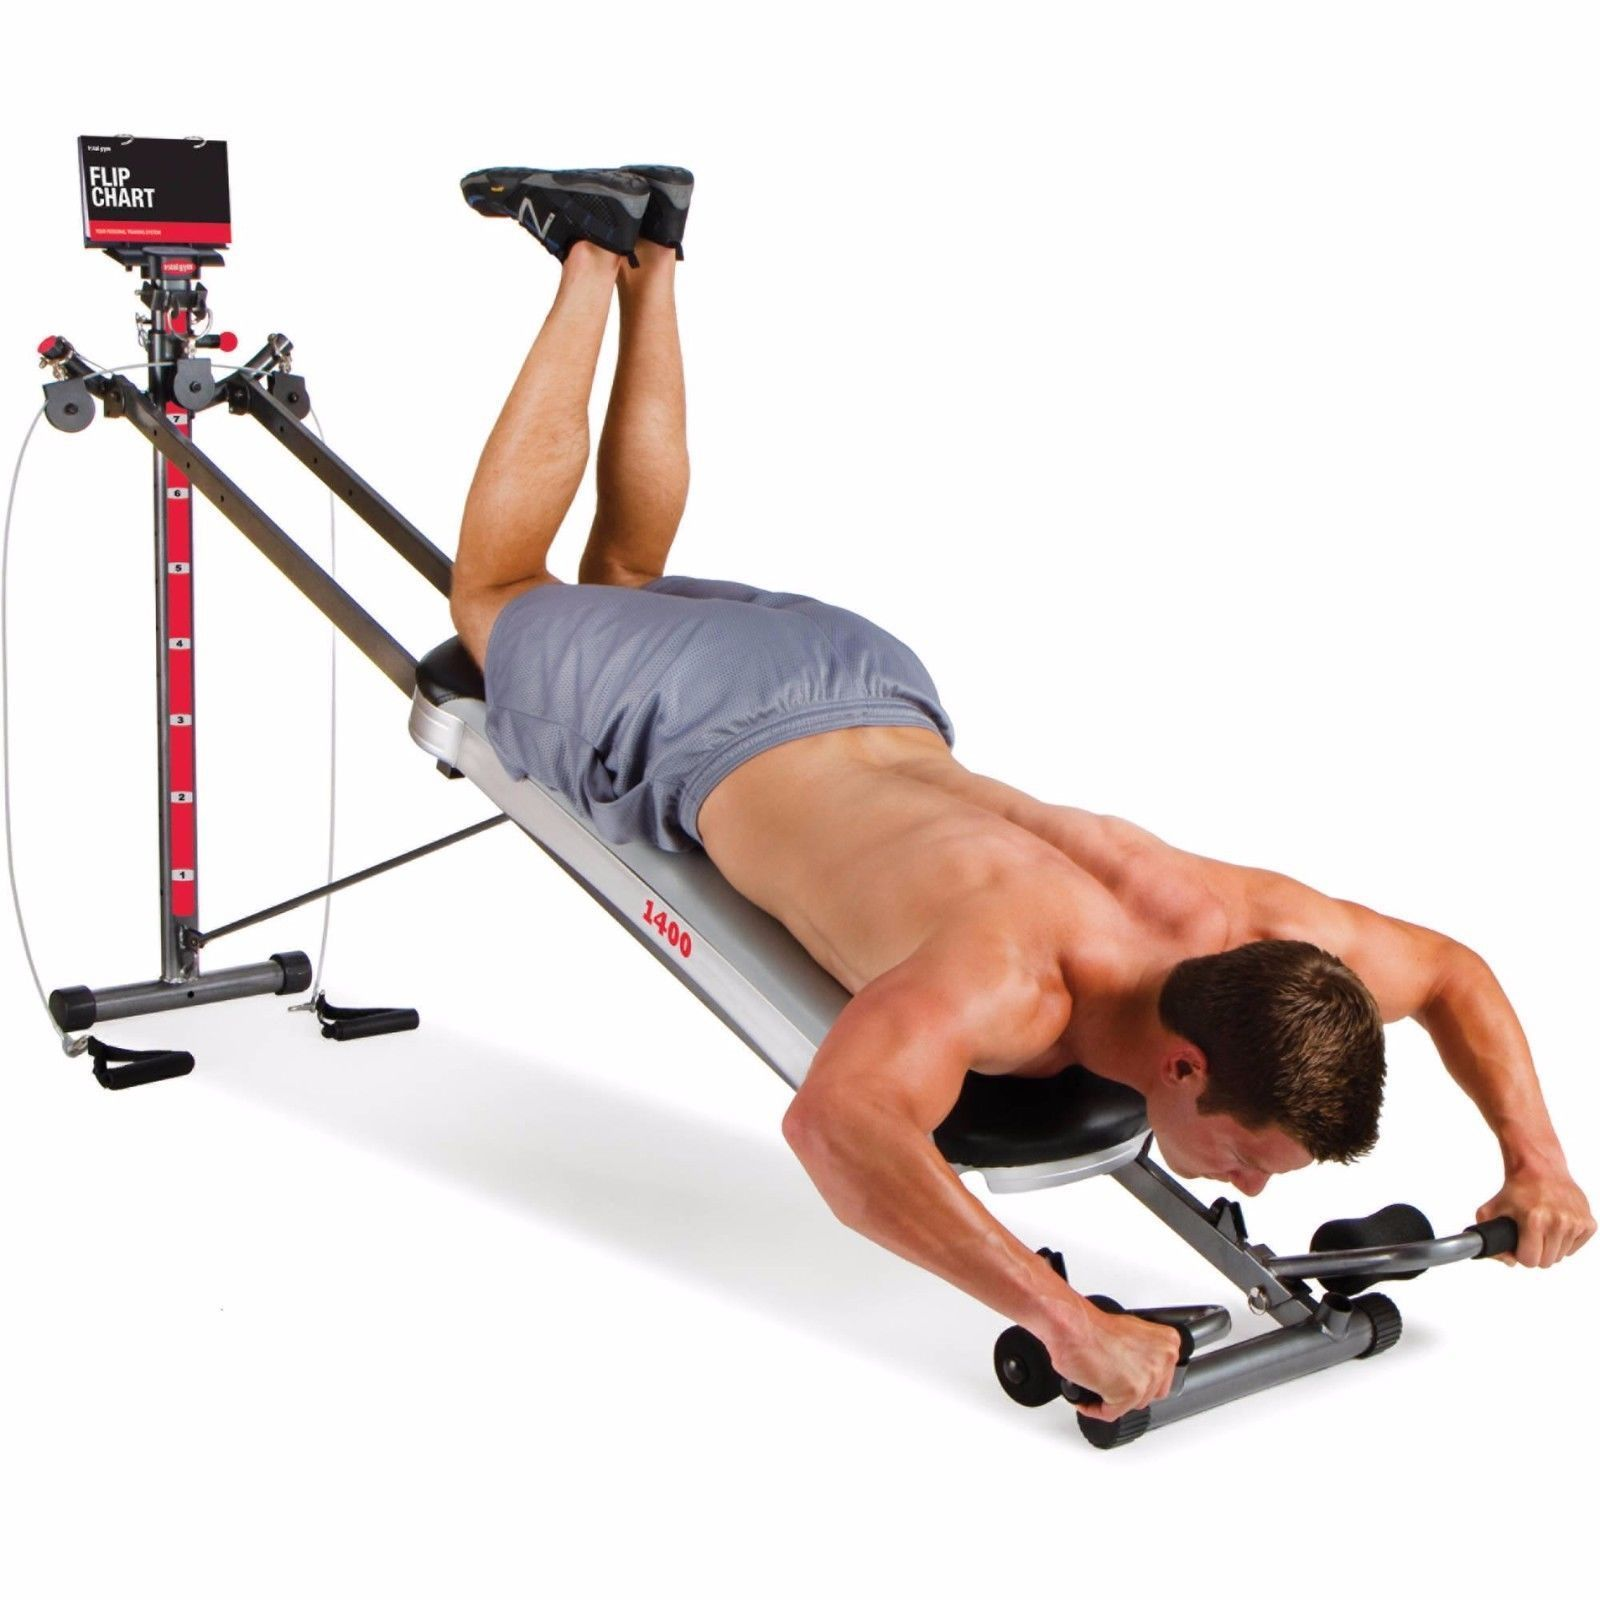 Free Weights Total Body Workout: Total Gym 1400 Deluxe Home Exercise Machine